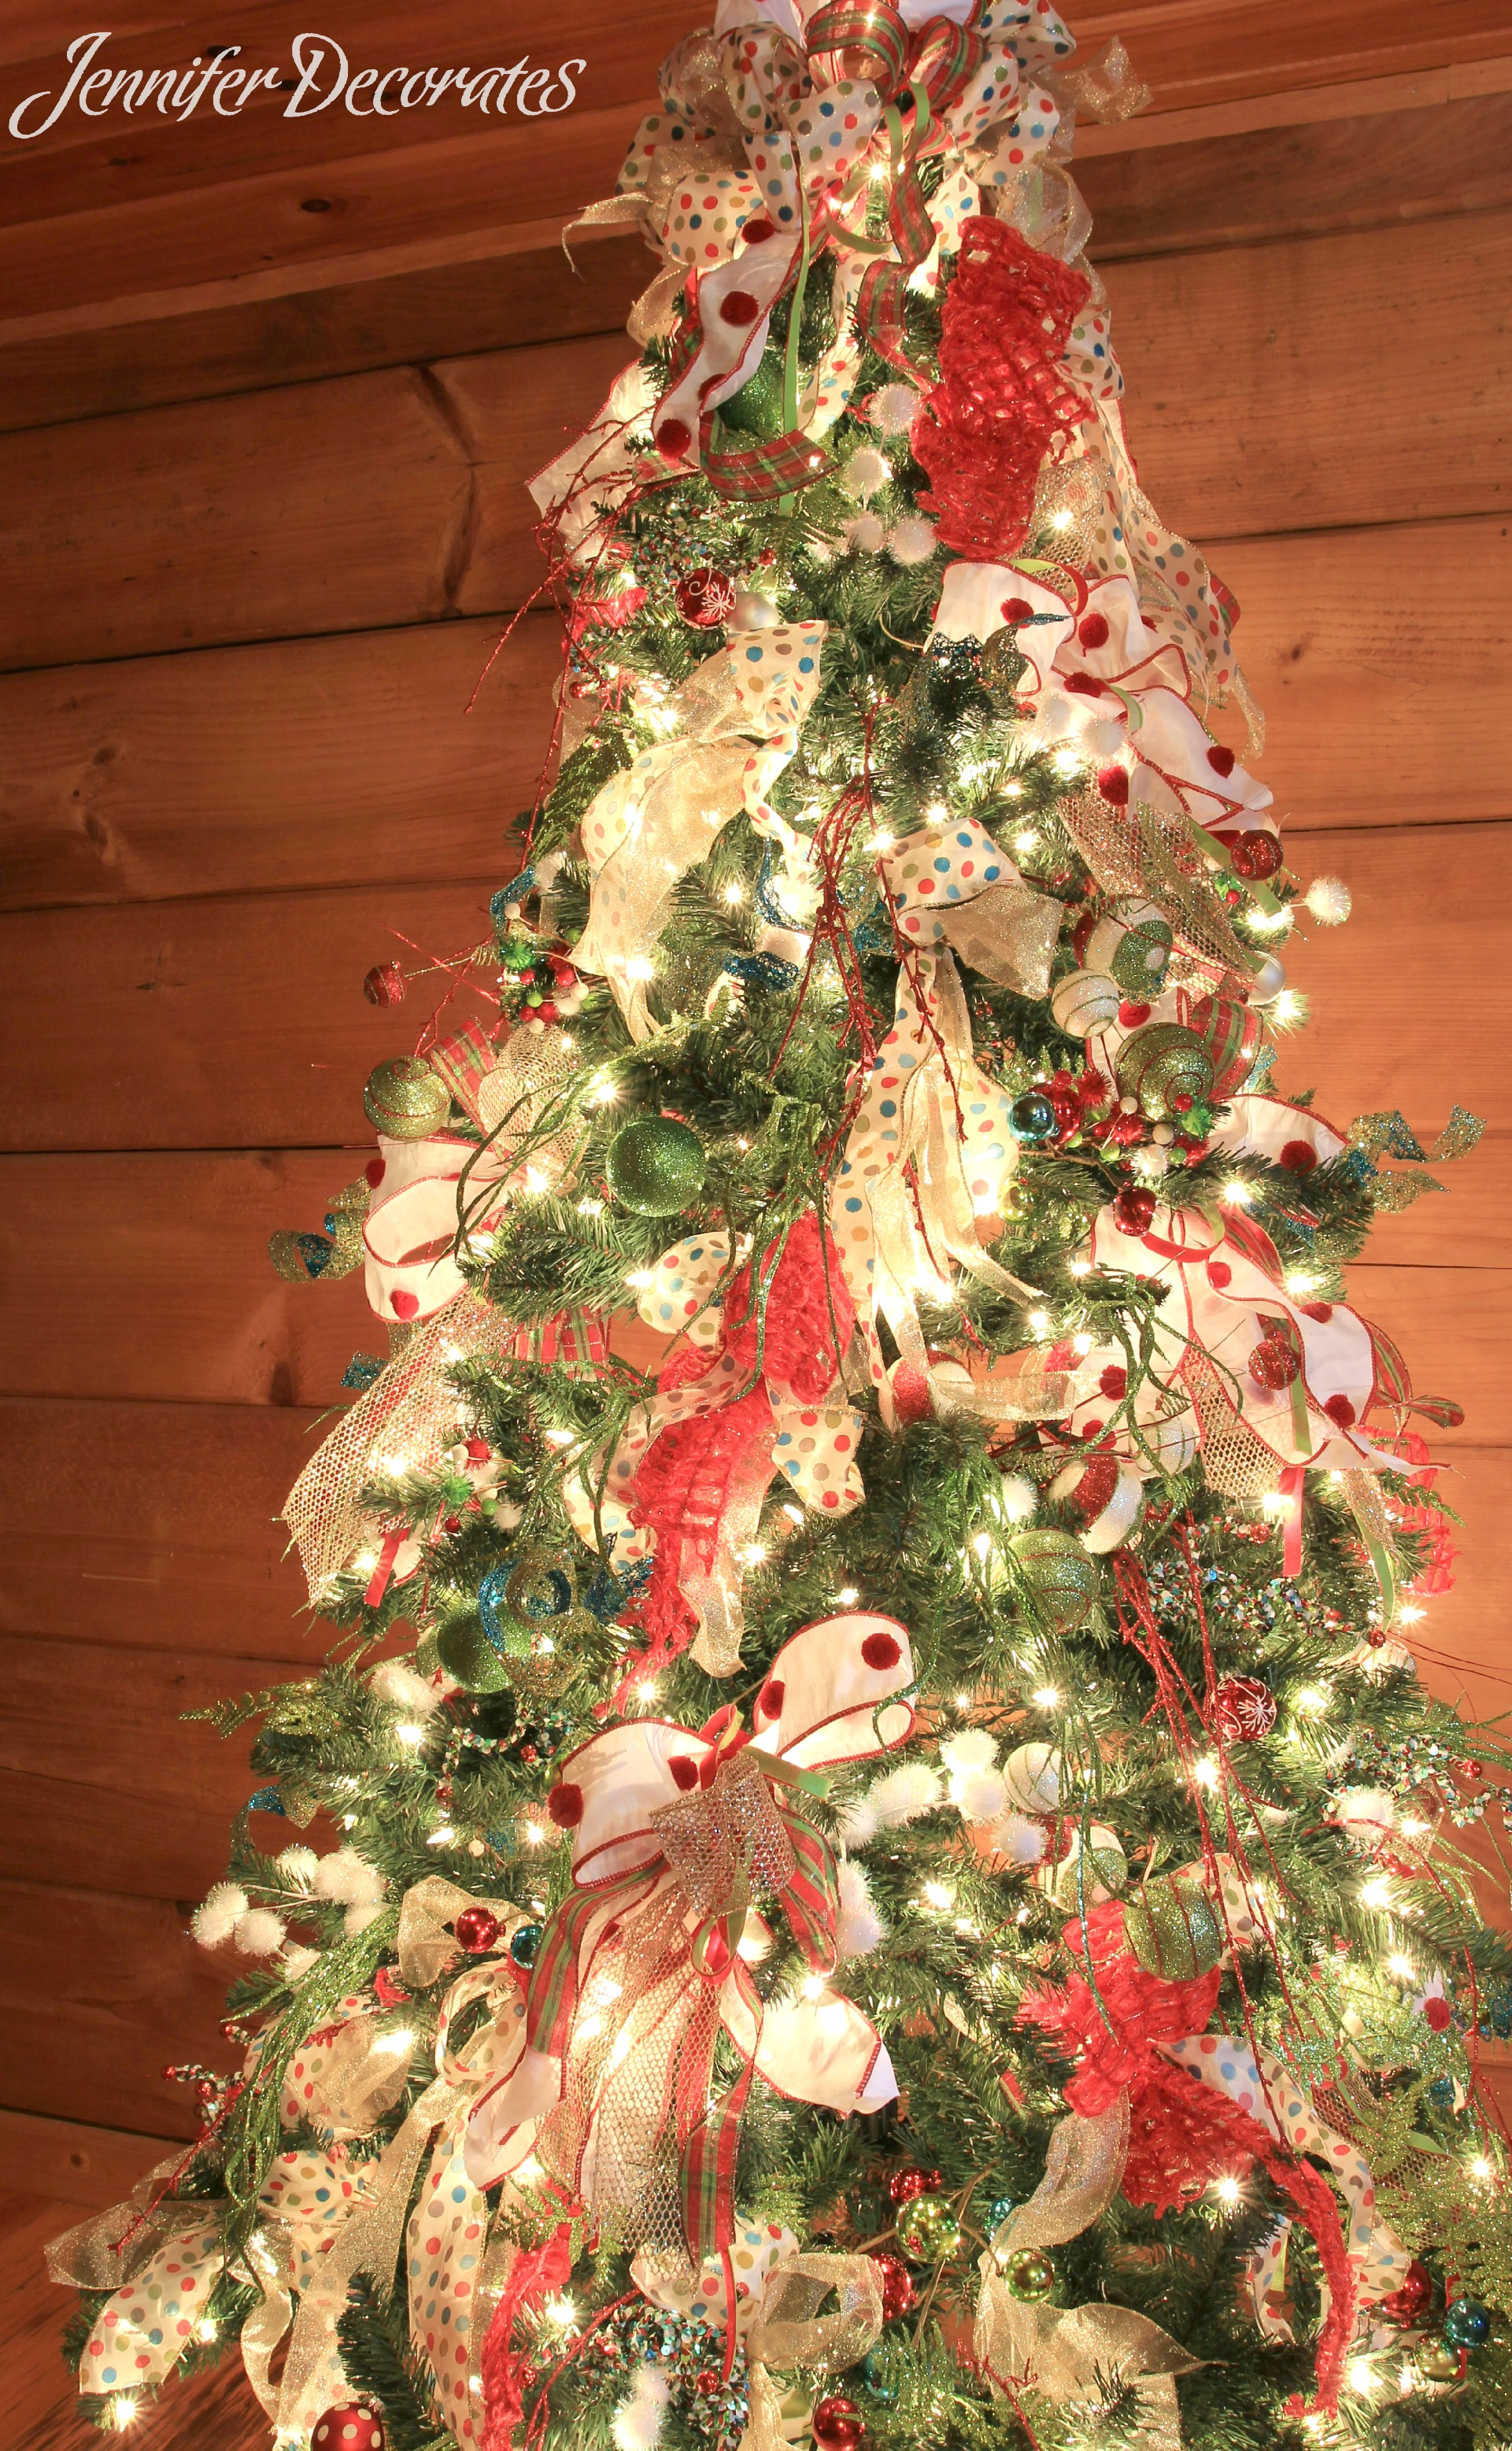 Country Christmas Decorating Ideas - Jennifer Decorates